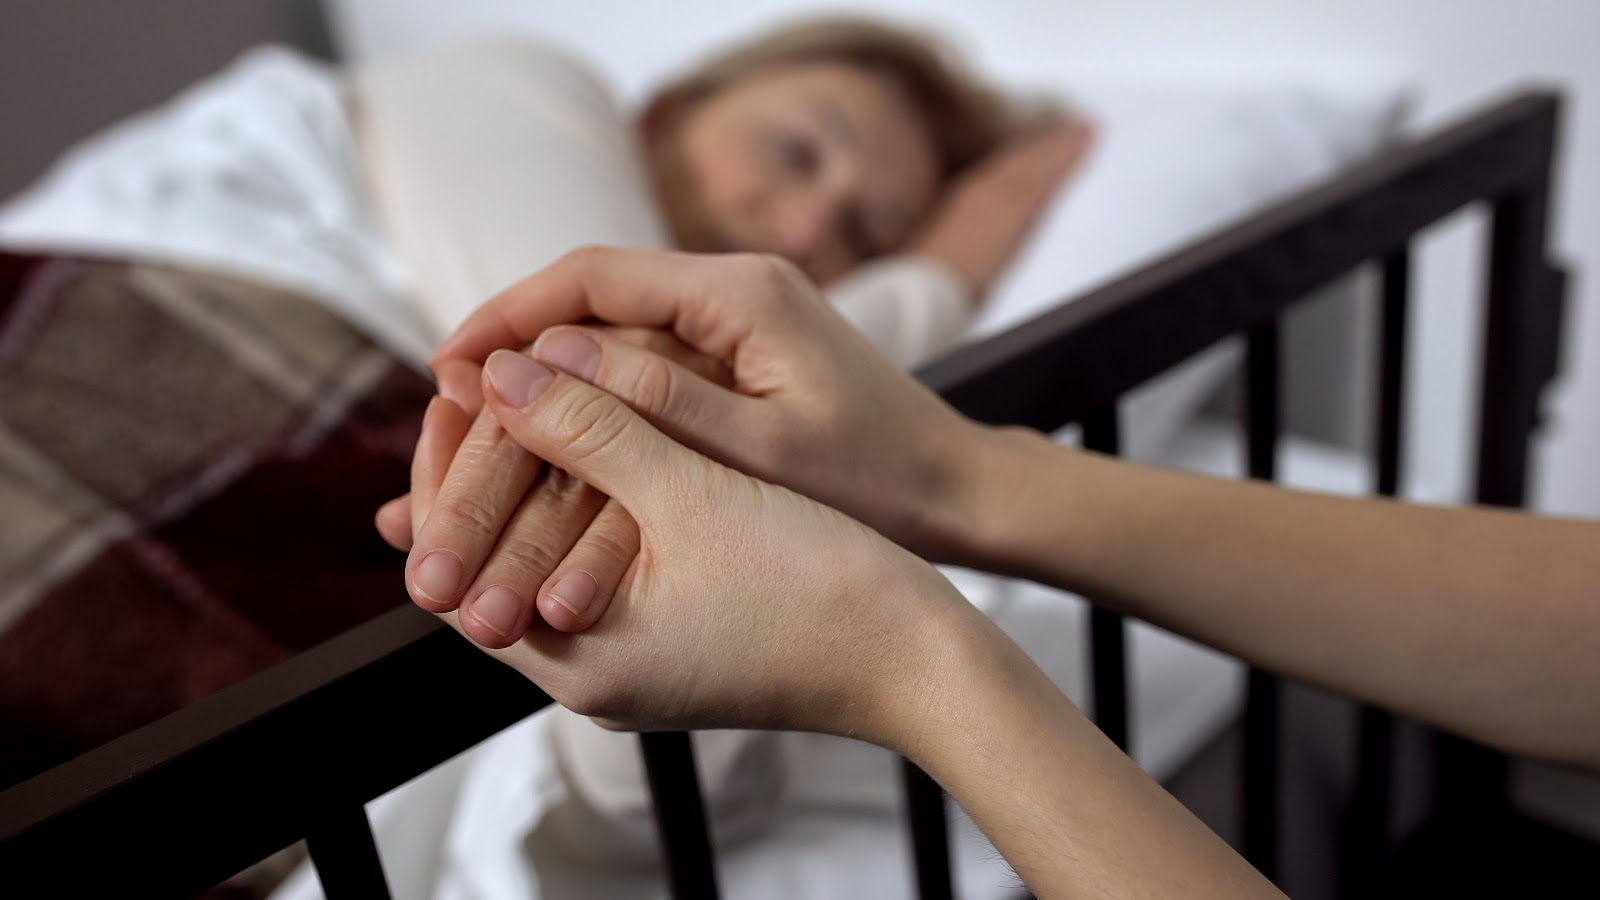 Holding the hands of a patient in a sick bed